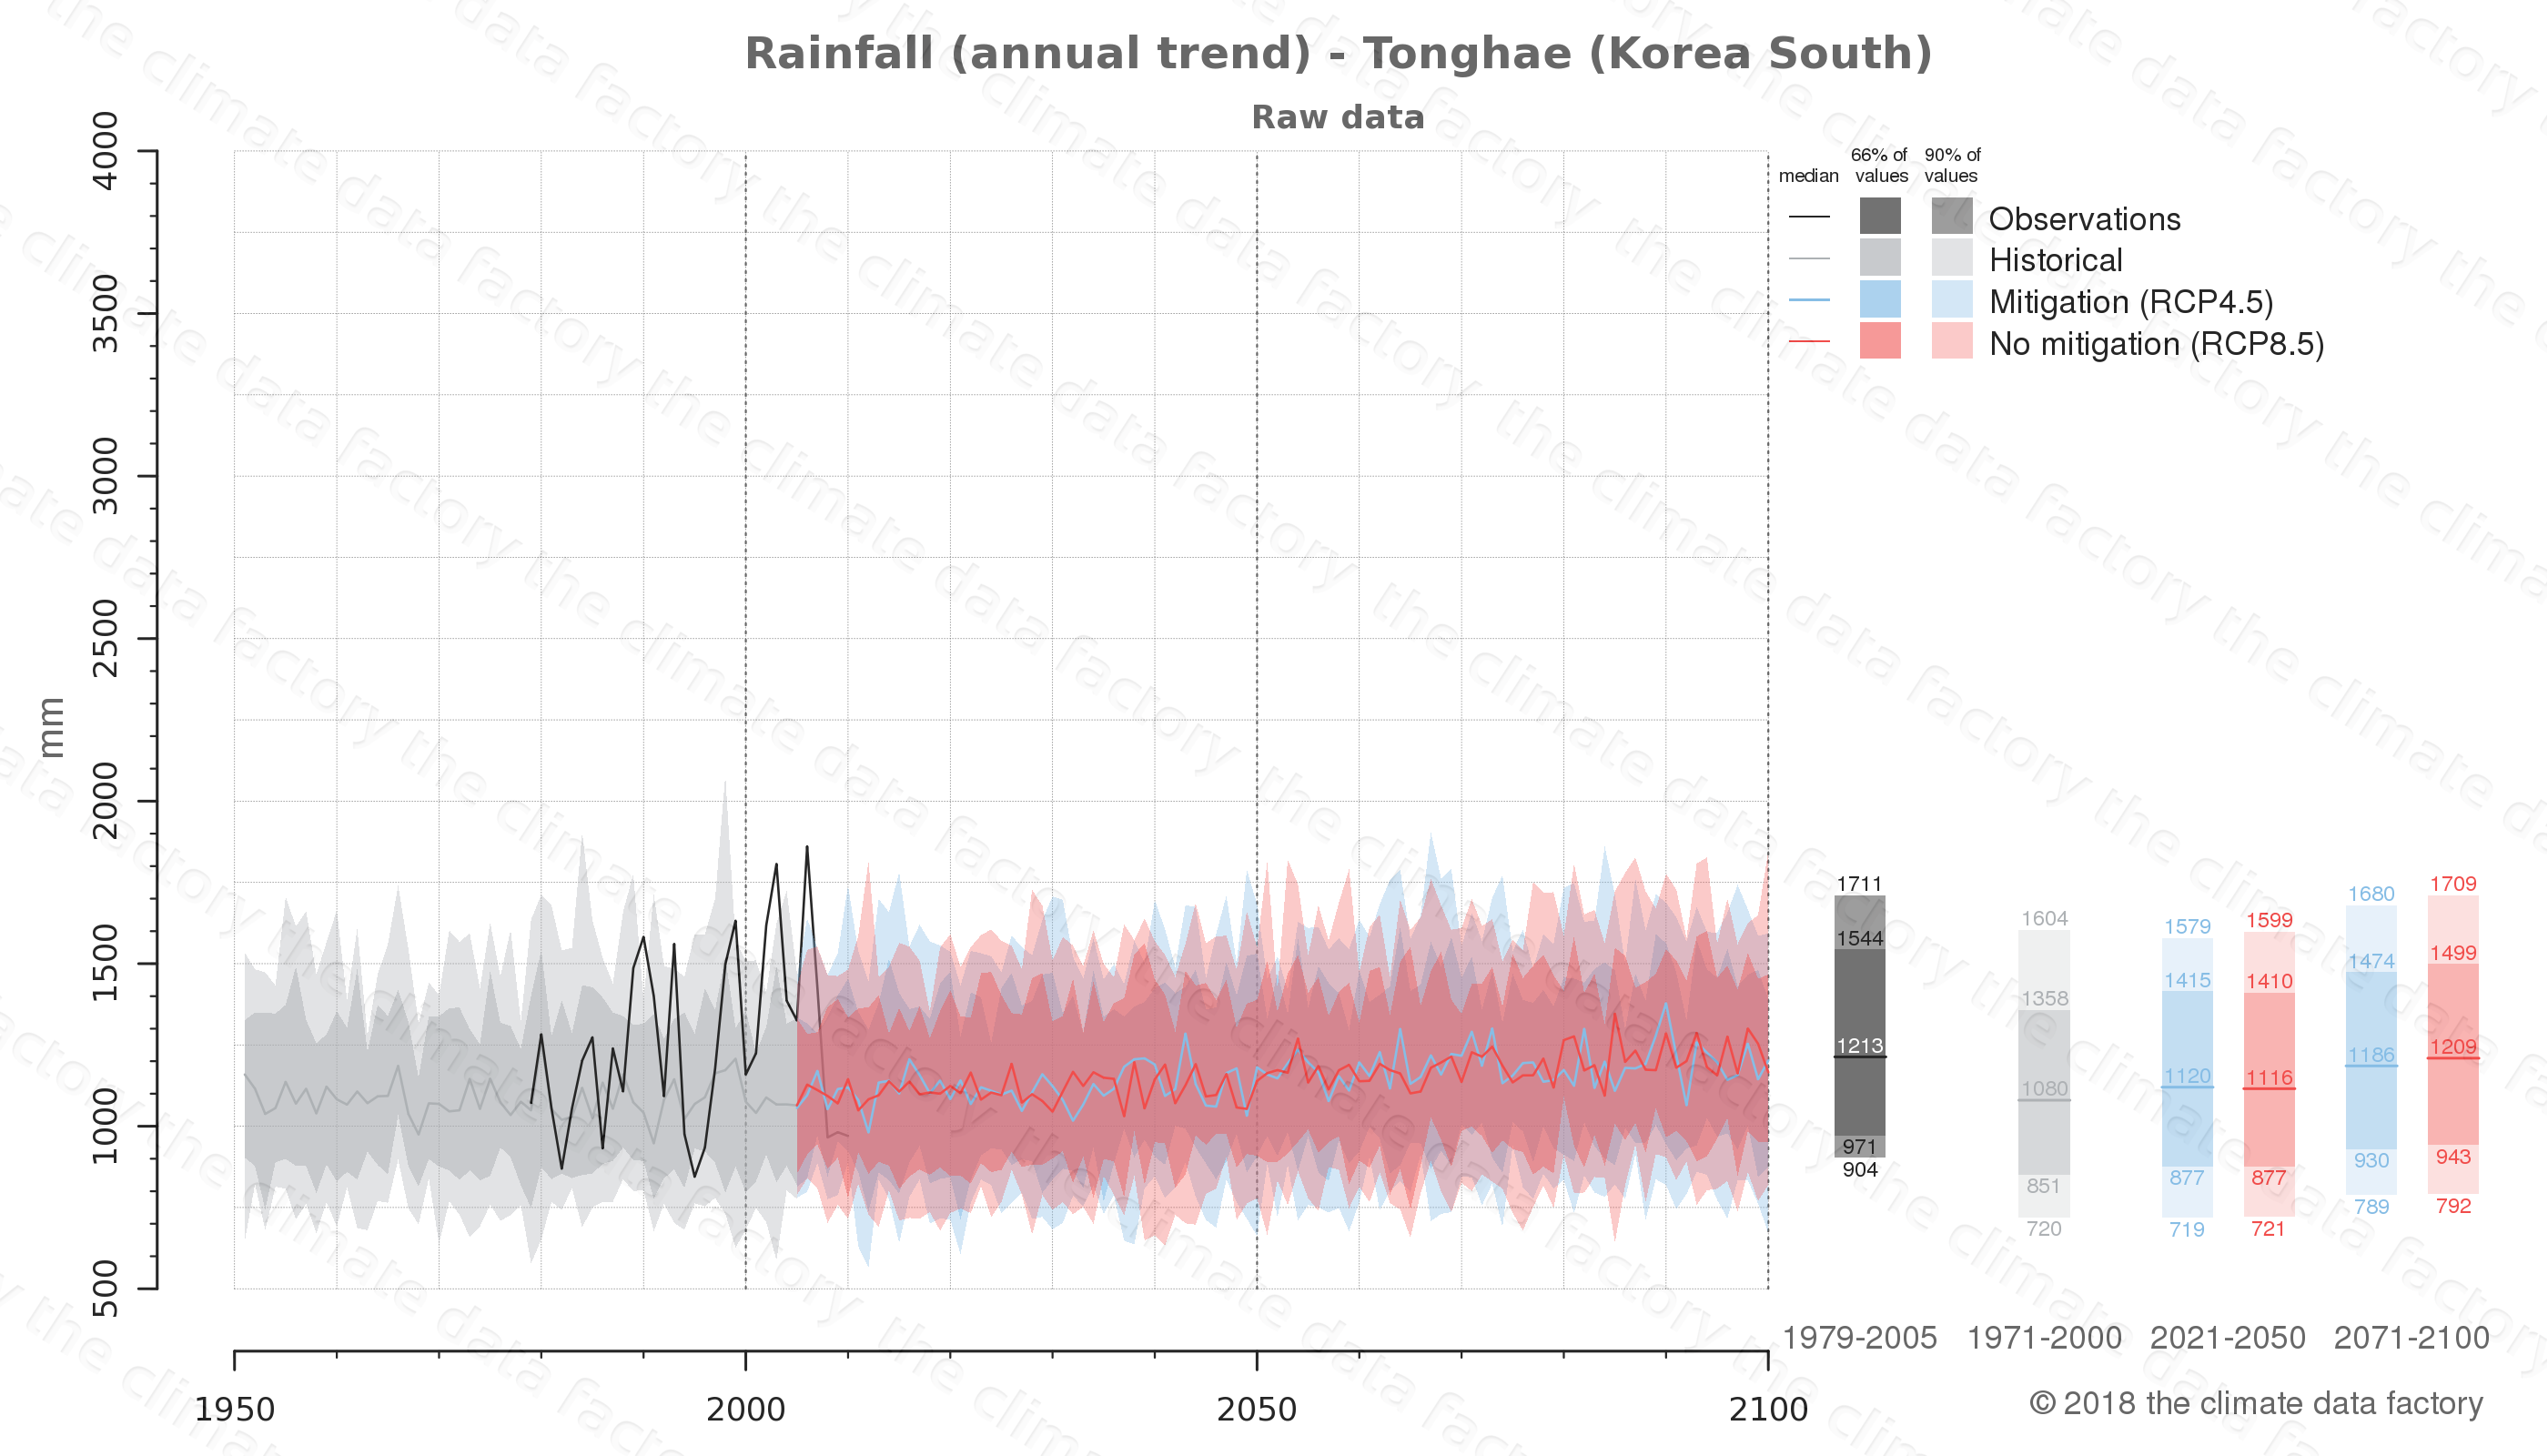 climate change data policy adaptation climate graph city data rainfall tonghae south korea